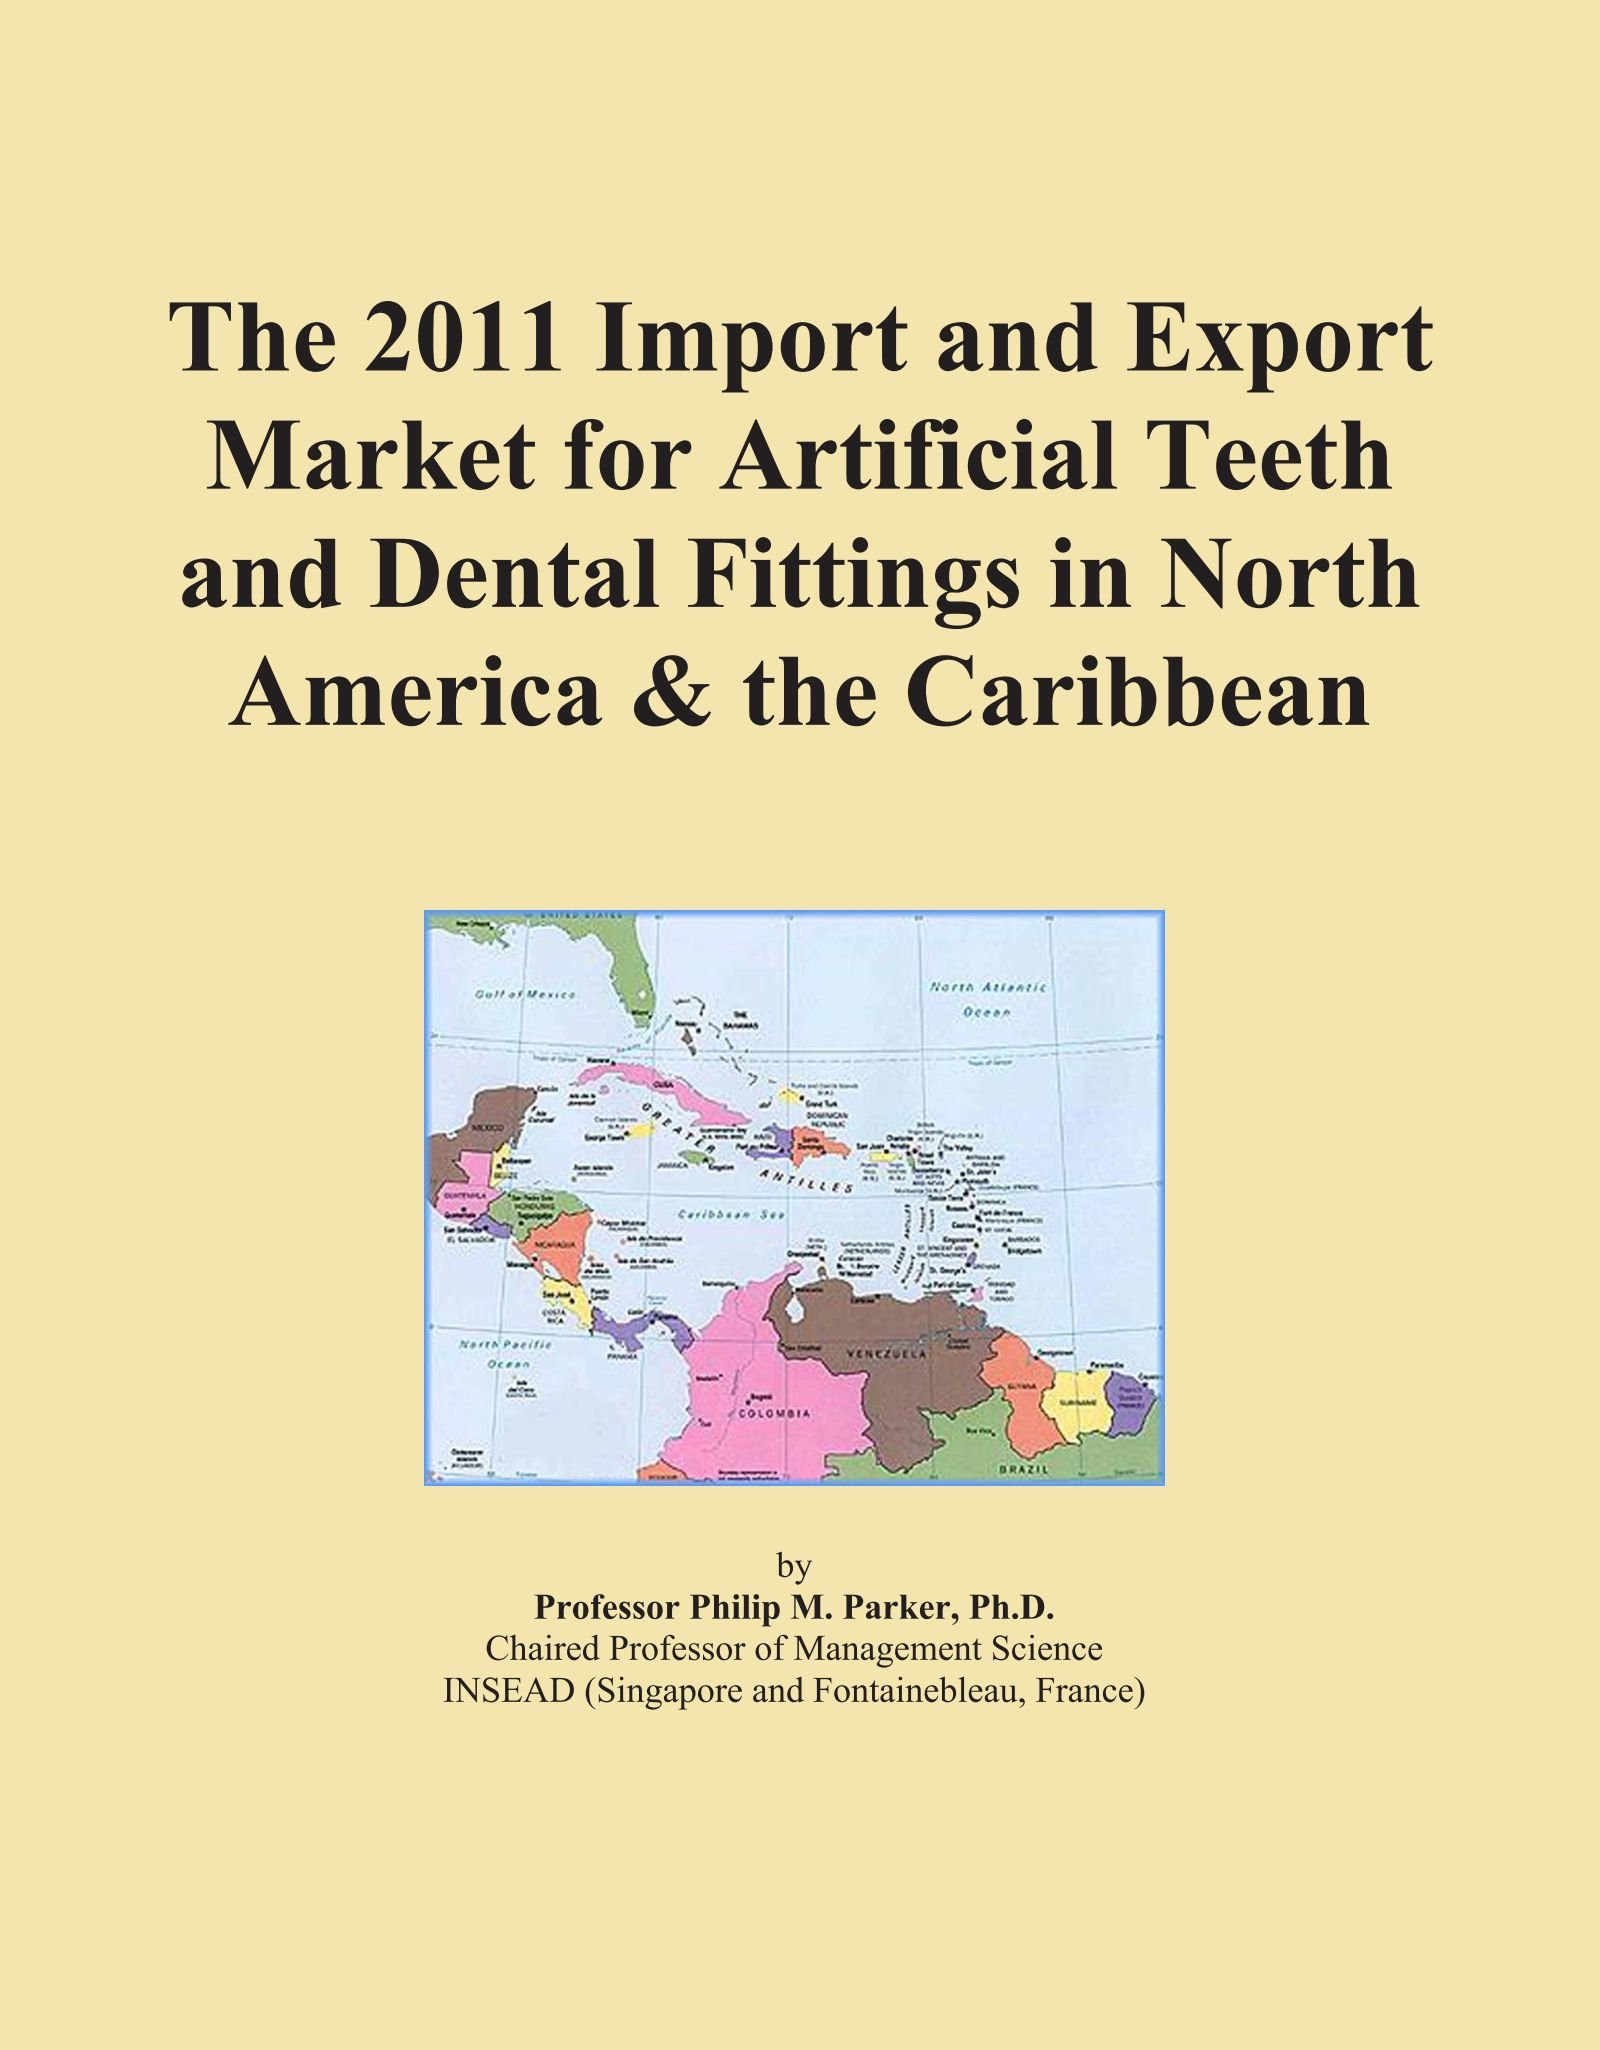 The 2011 Import and Export Market for Artificial Teeth and Dental Fittings in North America & the Caribbean